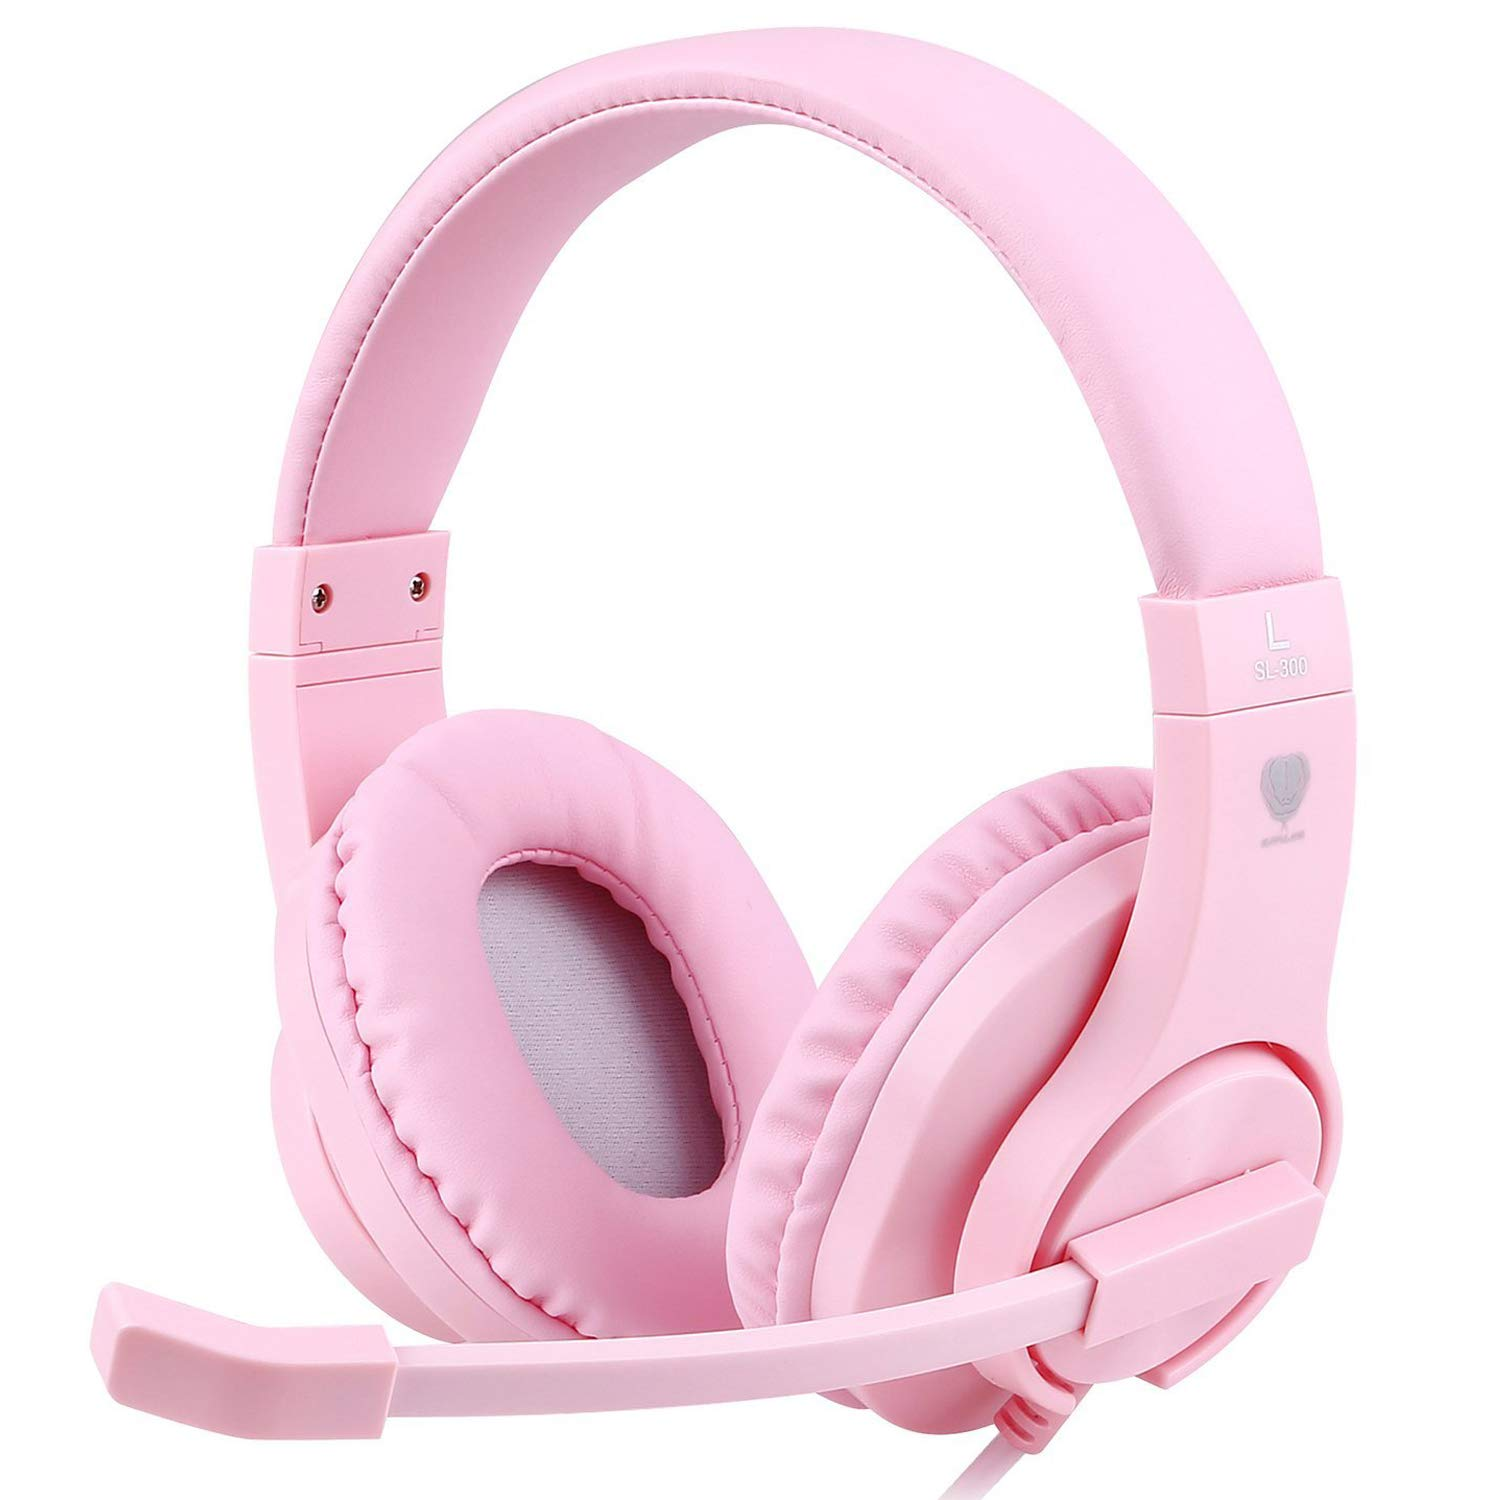 Meedasy Over-Ear Gaming Headphone for Xbox One, Nintendo Switch, Bass Surrounding Stereo, PS4 Gaming Headset with Microphone and Volume Control for Laptop, PC, Wired Noise Isolation (Pink) by Meedasy